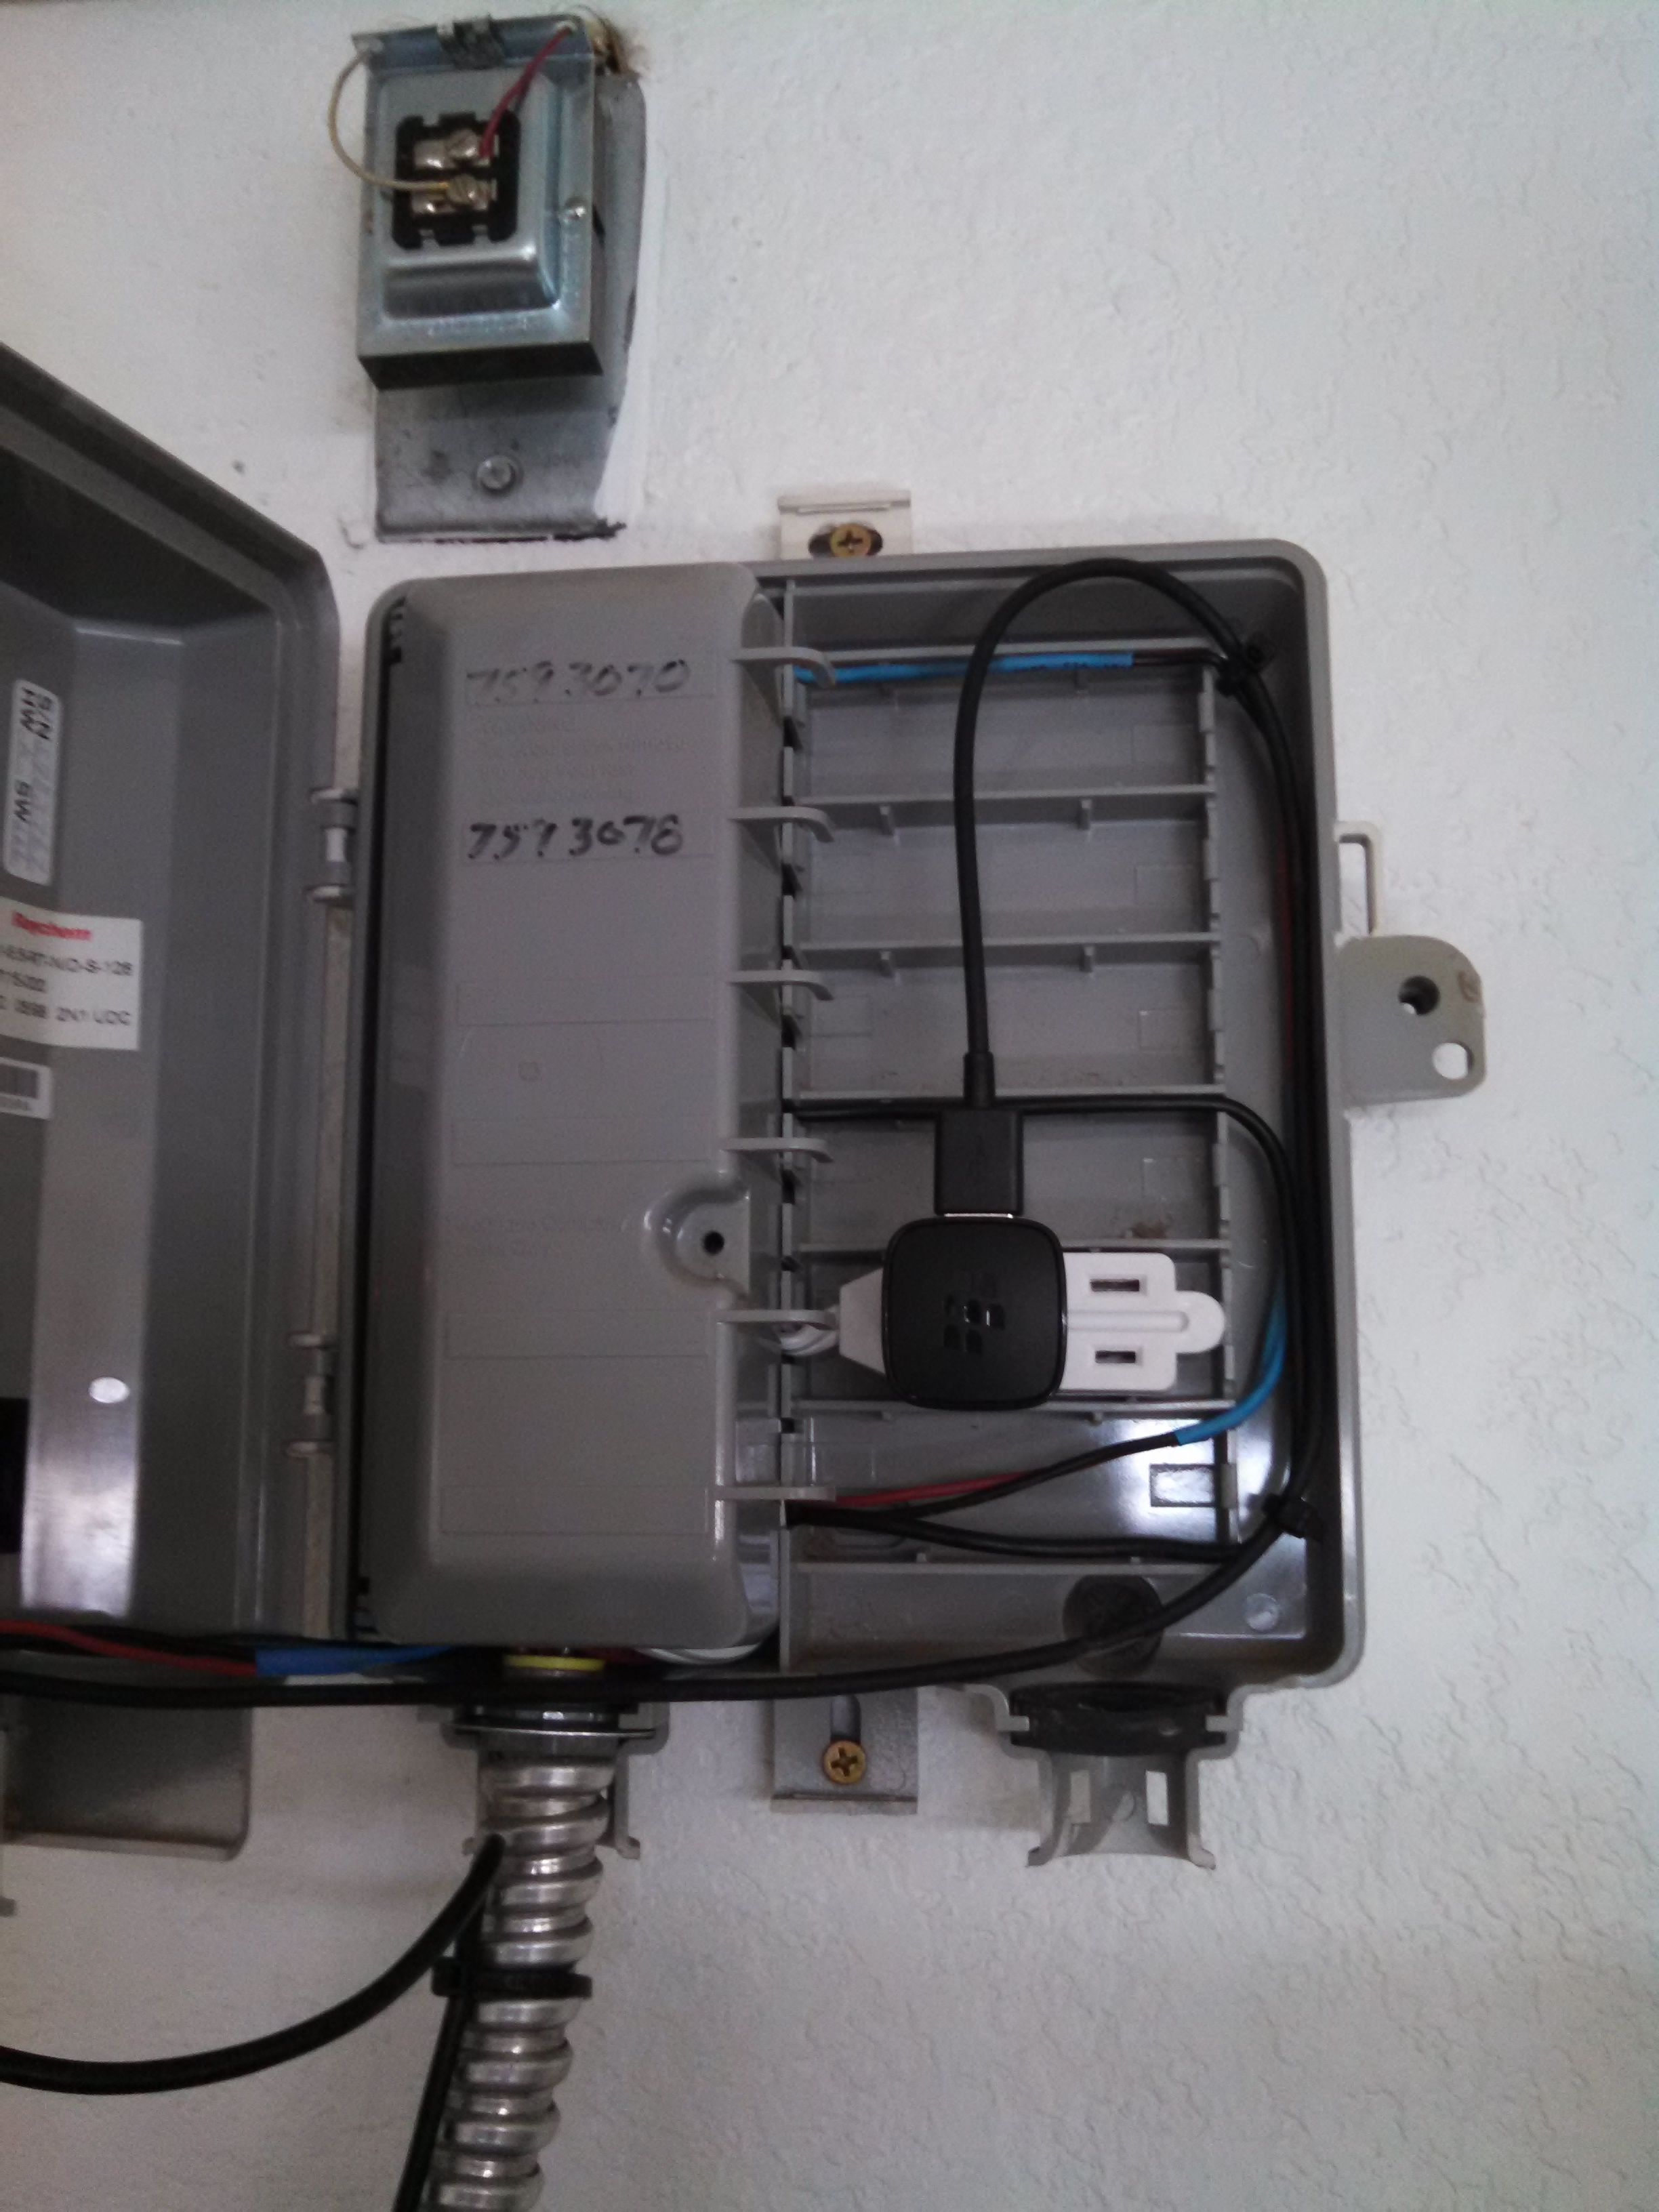 Tinker Labz - Water Heater Control Box View 1